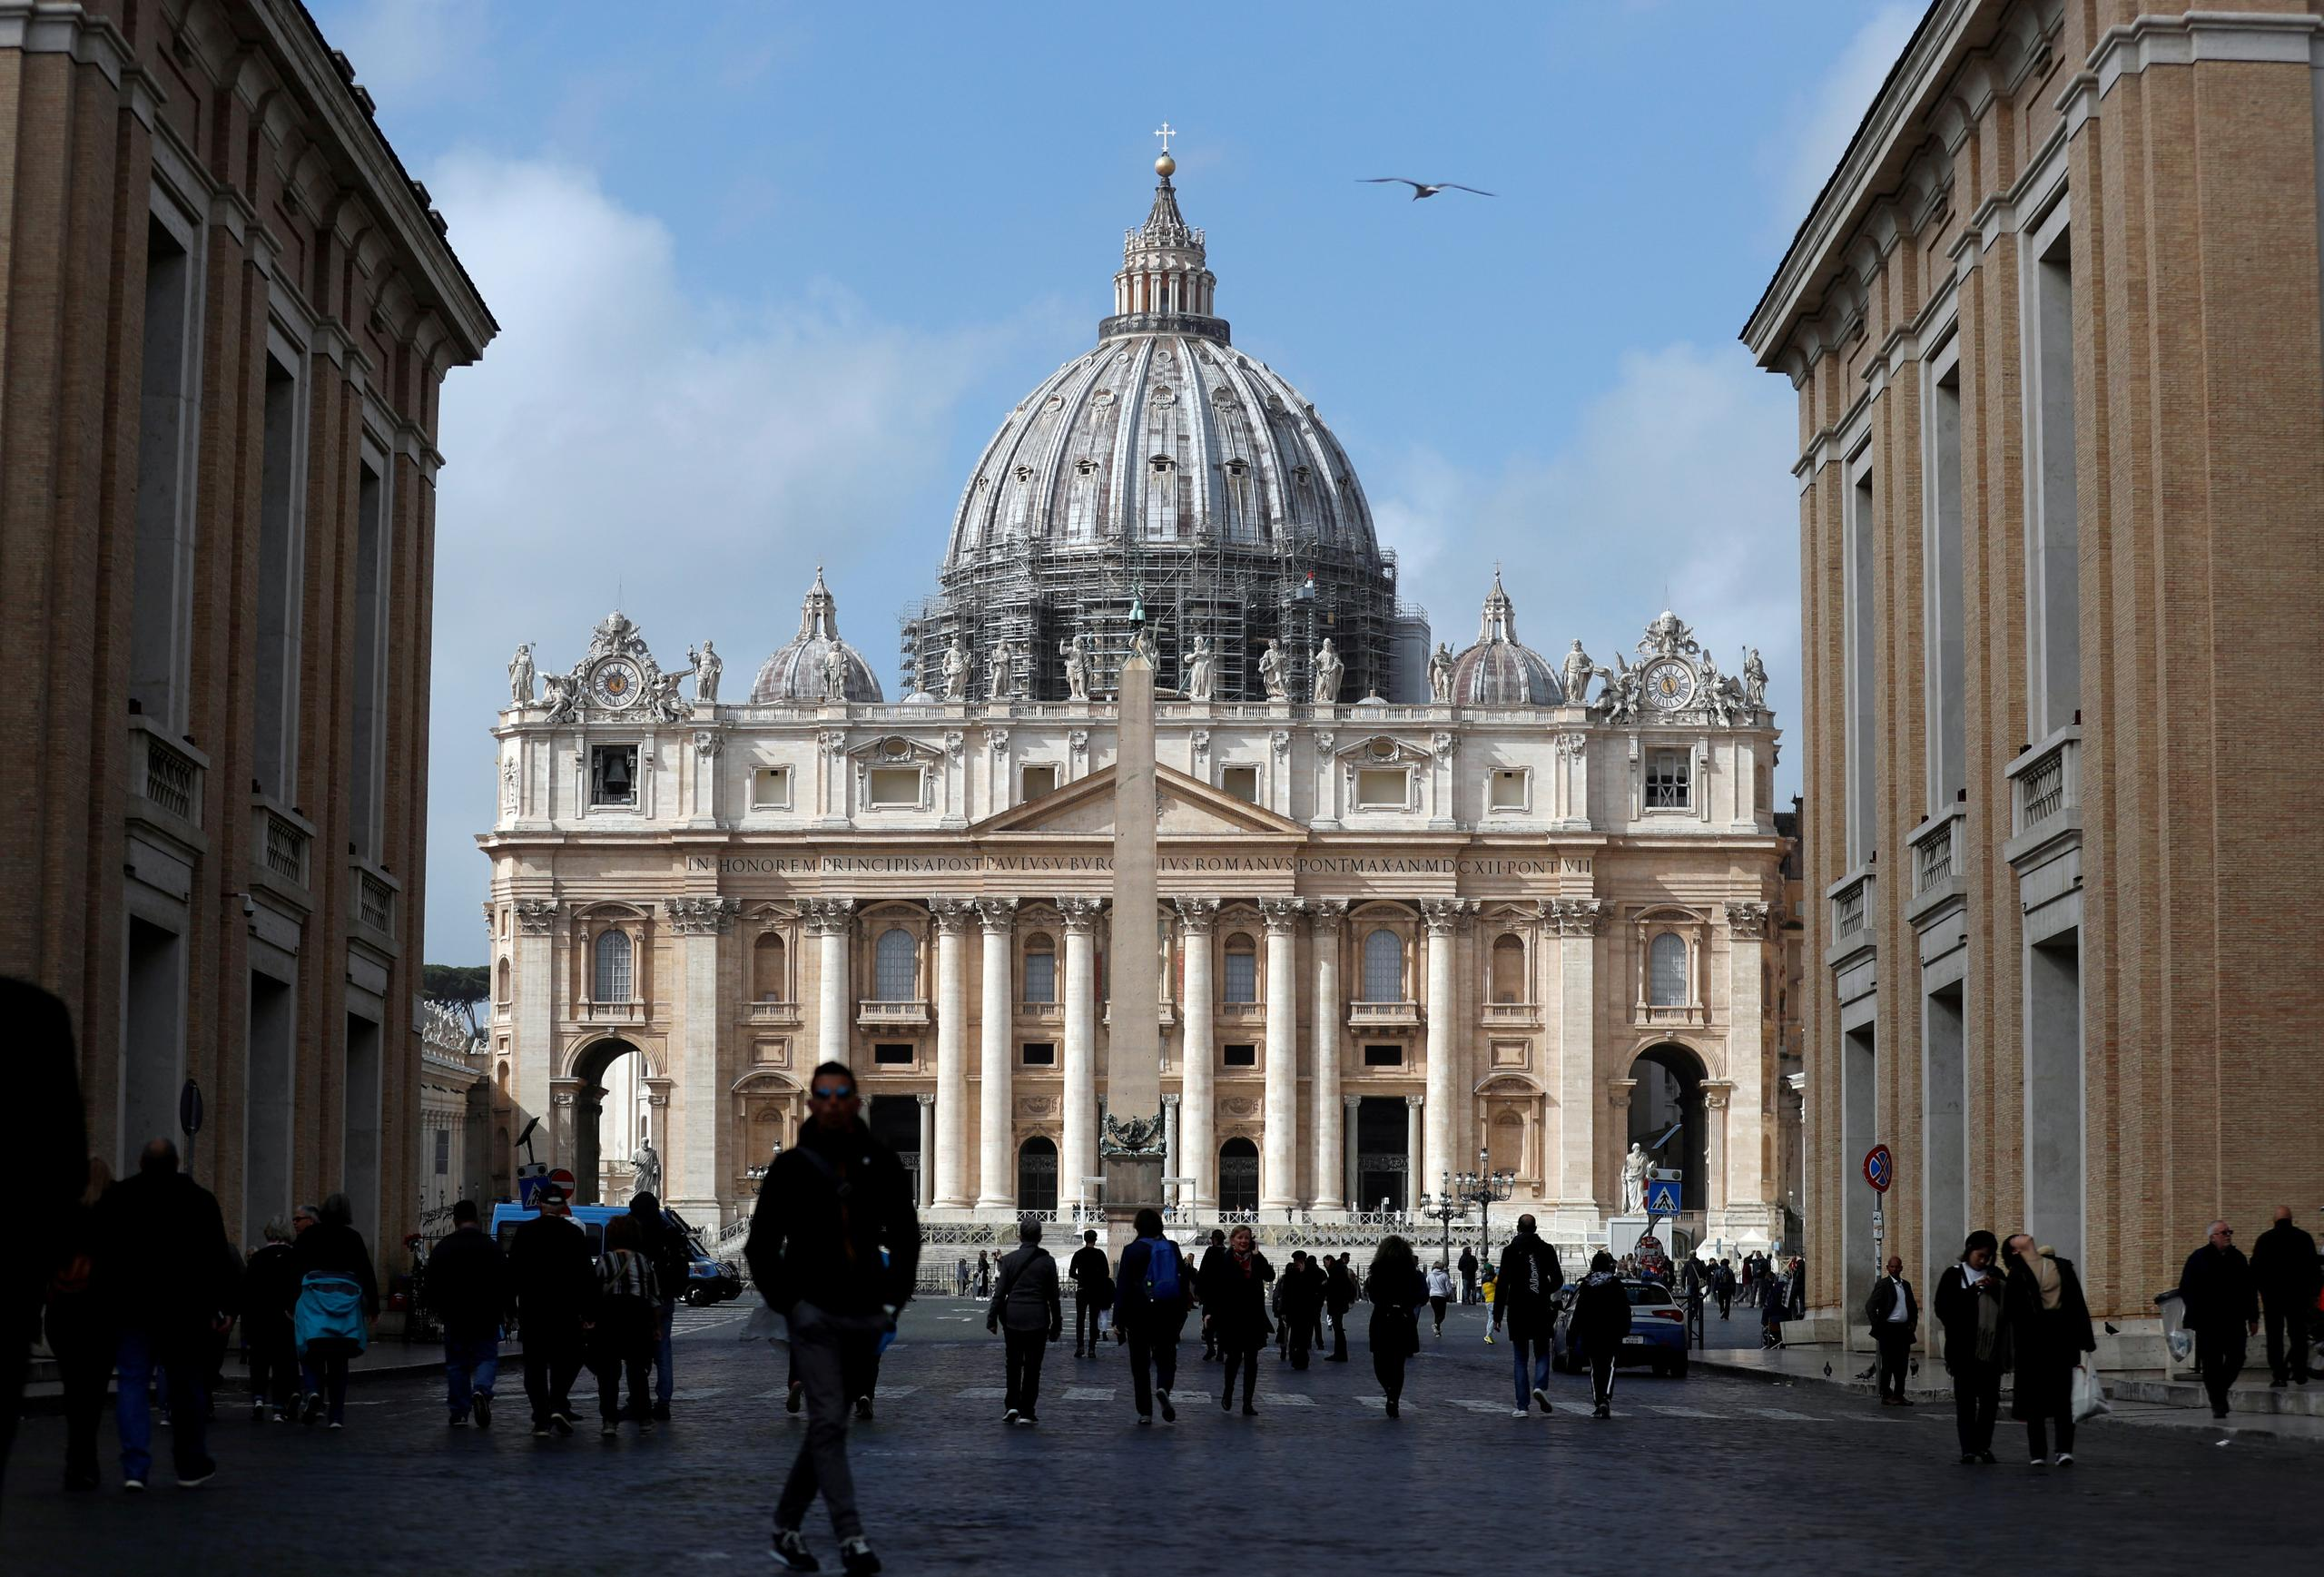 FILE PHOTO: People walk on St. Peter's Square after the Vatican reports its first case of coronavirus, at the Vatican, March 6, 2020. REUTERS/Yara Nardi